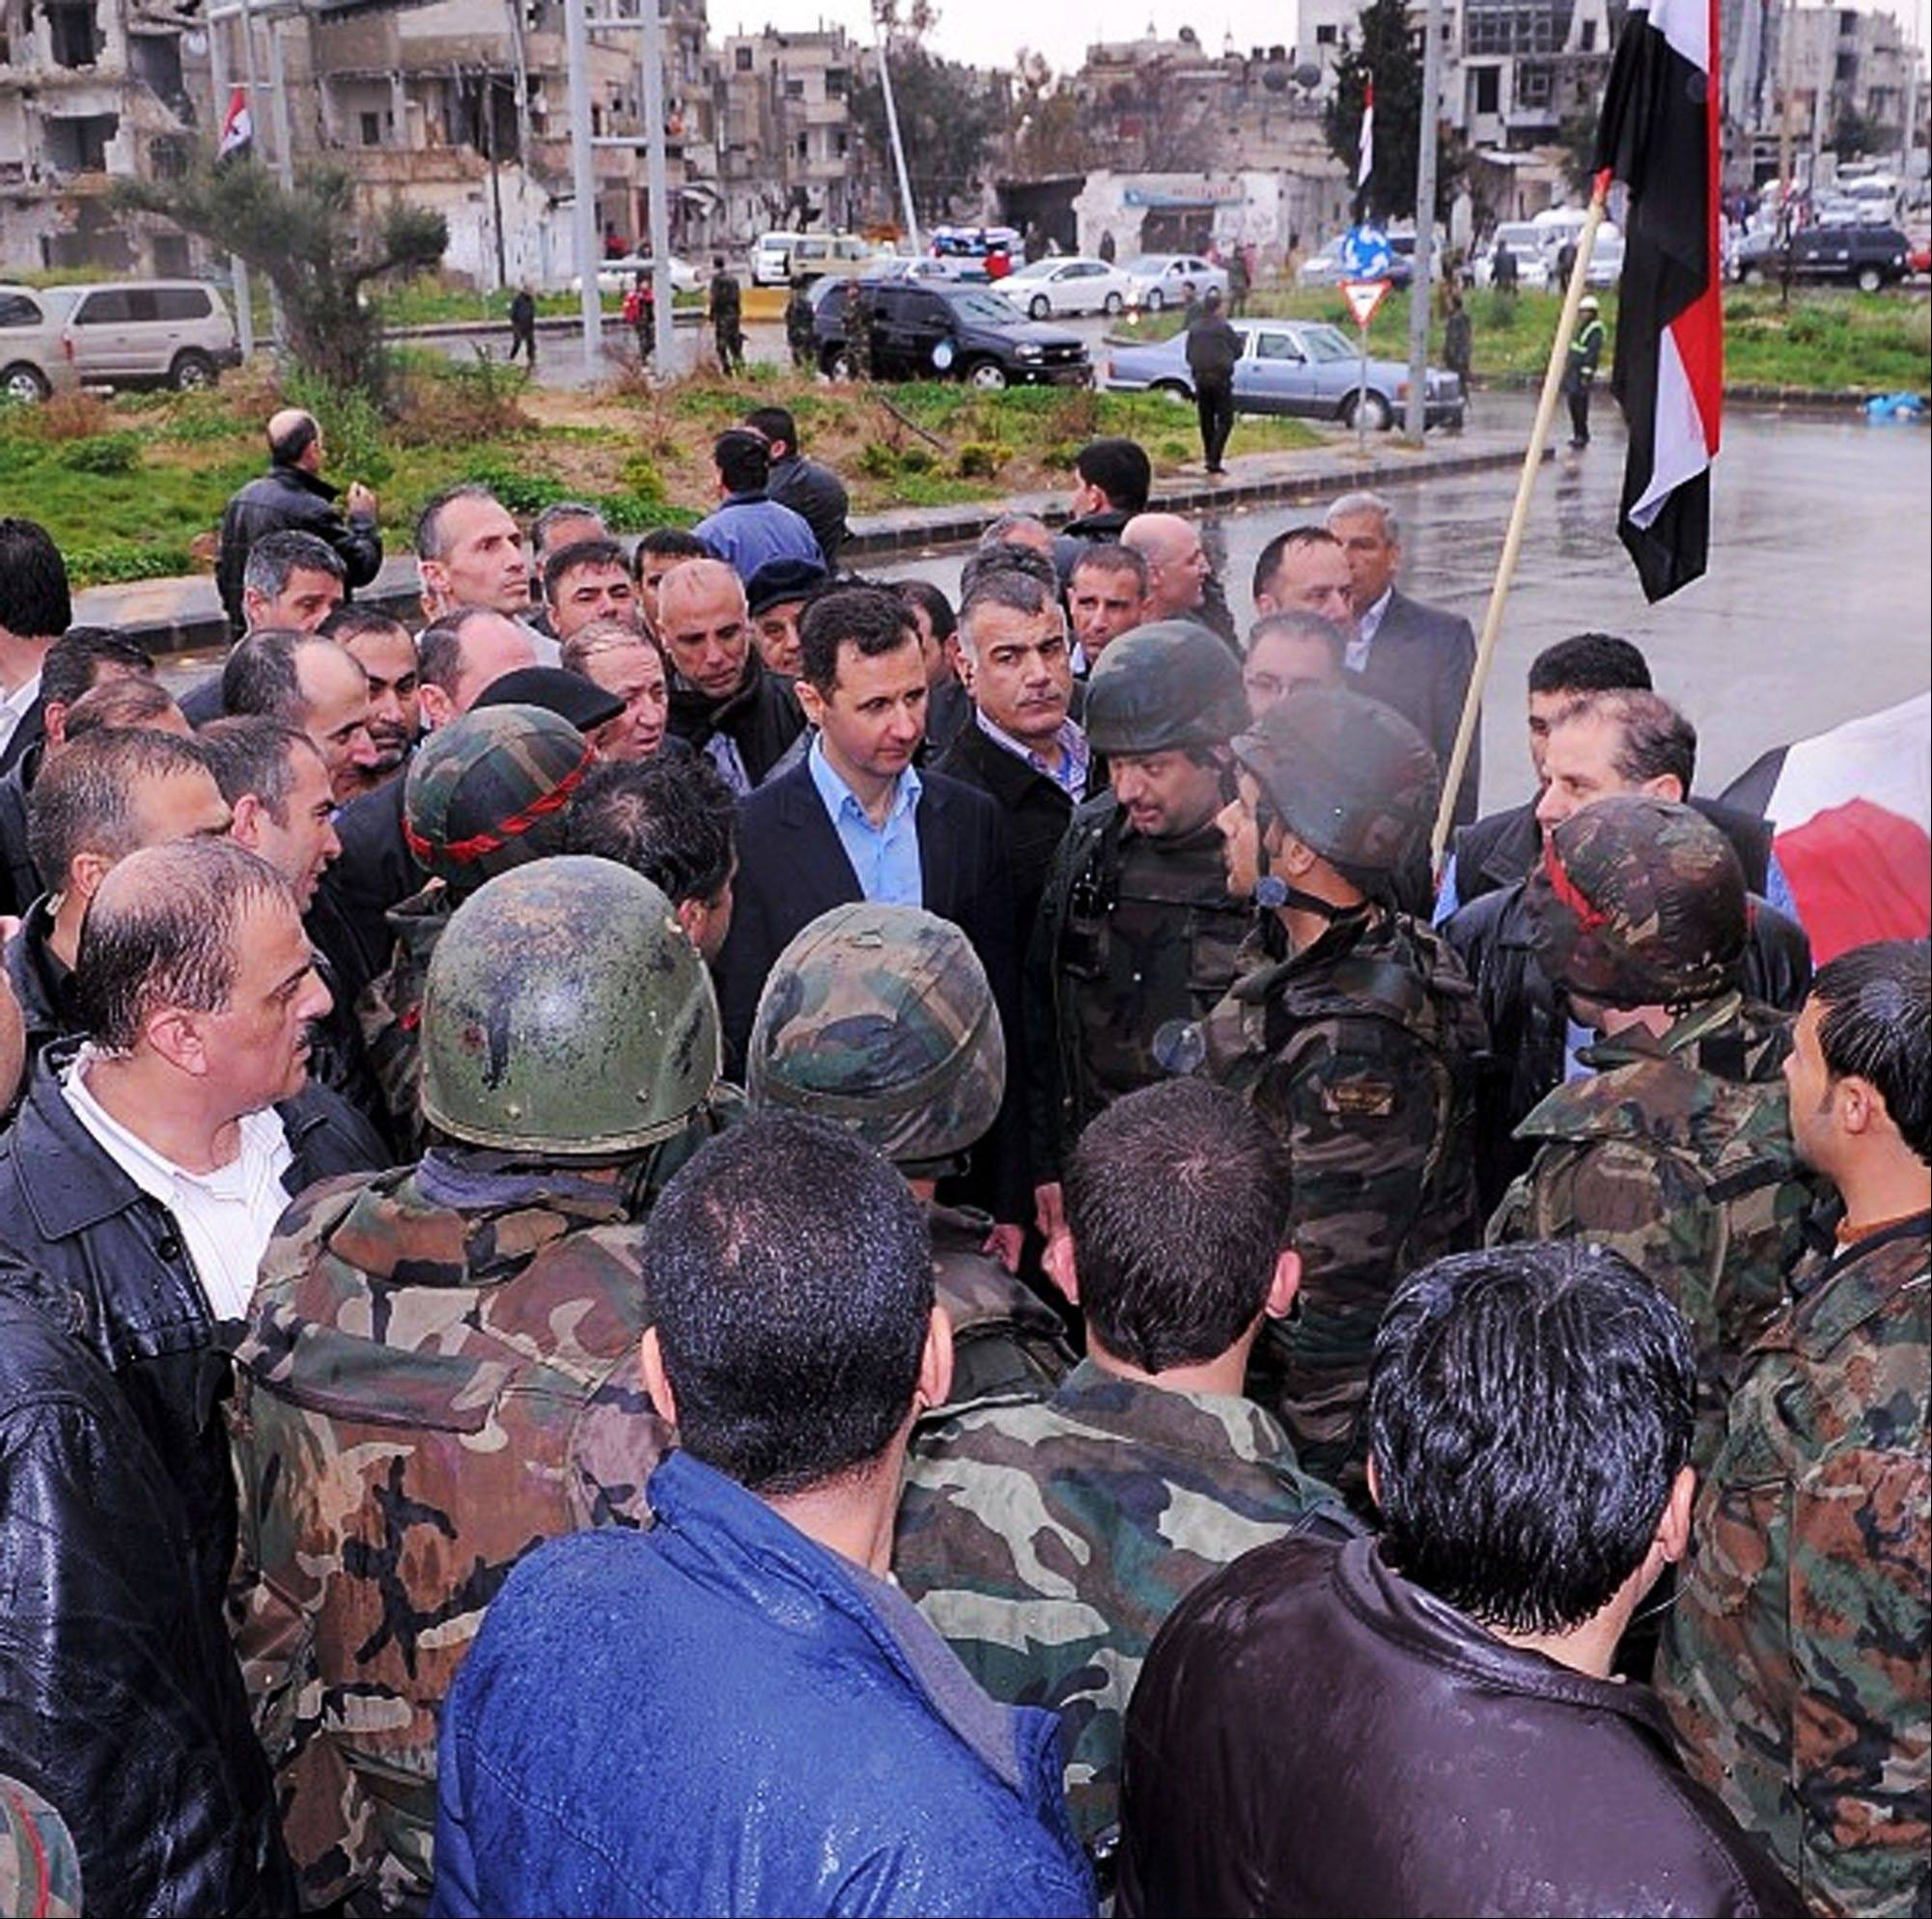 This undated photo posted on the official Instagram account of the Syrian Presidency purports to show Bashar Assad visiting with soldiers in Baba Armr, Homs province, Syria, in 2012. Amid the carnage from the Syrian civil war, President Bashar Assad has embraced every tool at his disposal including social media to project confidence and transmit his message to dedicated fans, most recently on the popular photo-sharing service Instagram posting pictures of himself and his glamorous wife surrounded by idolizing crowds.